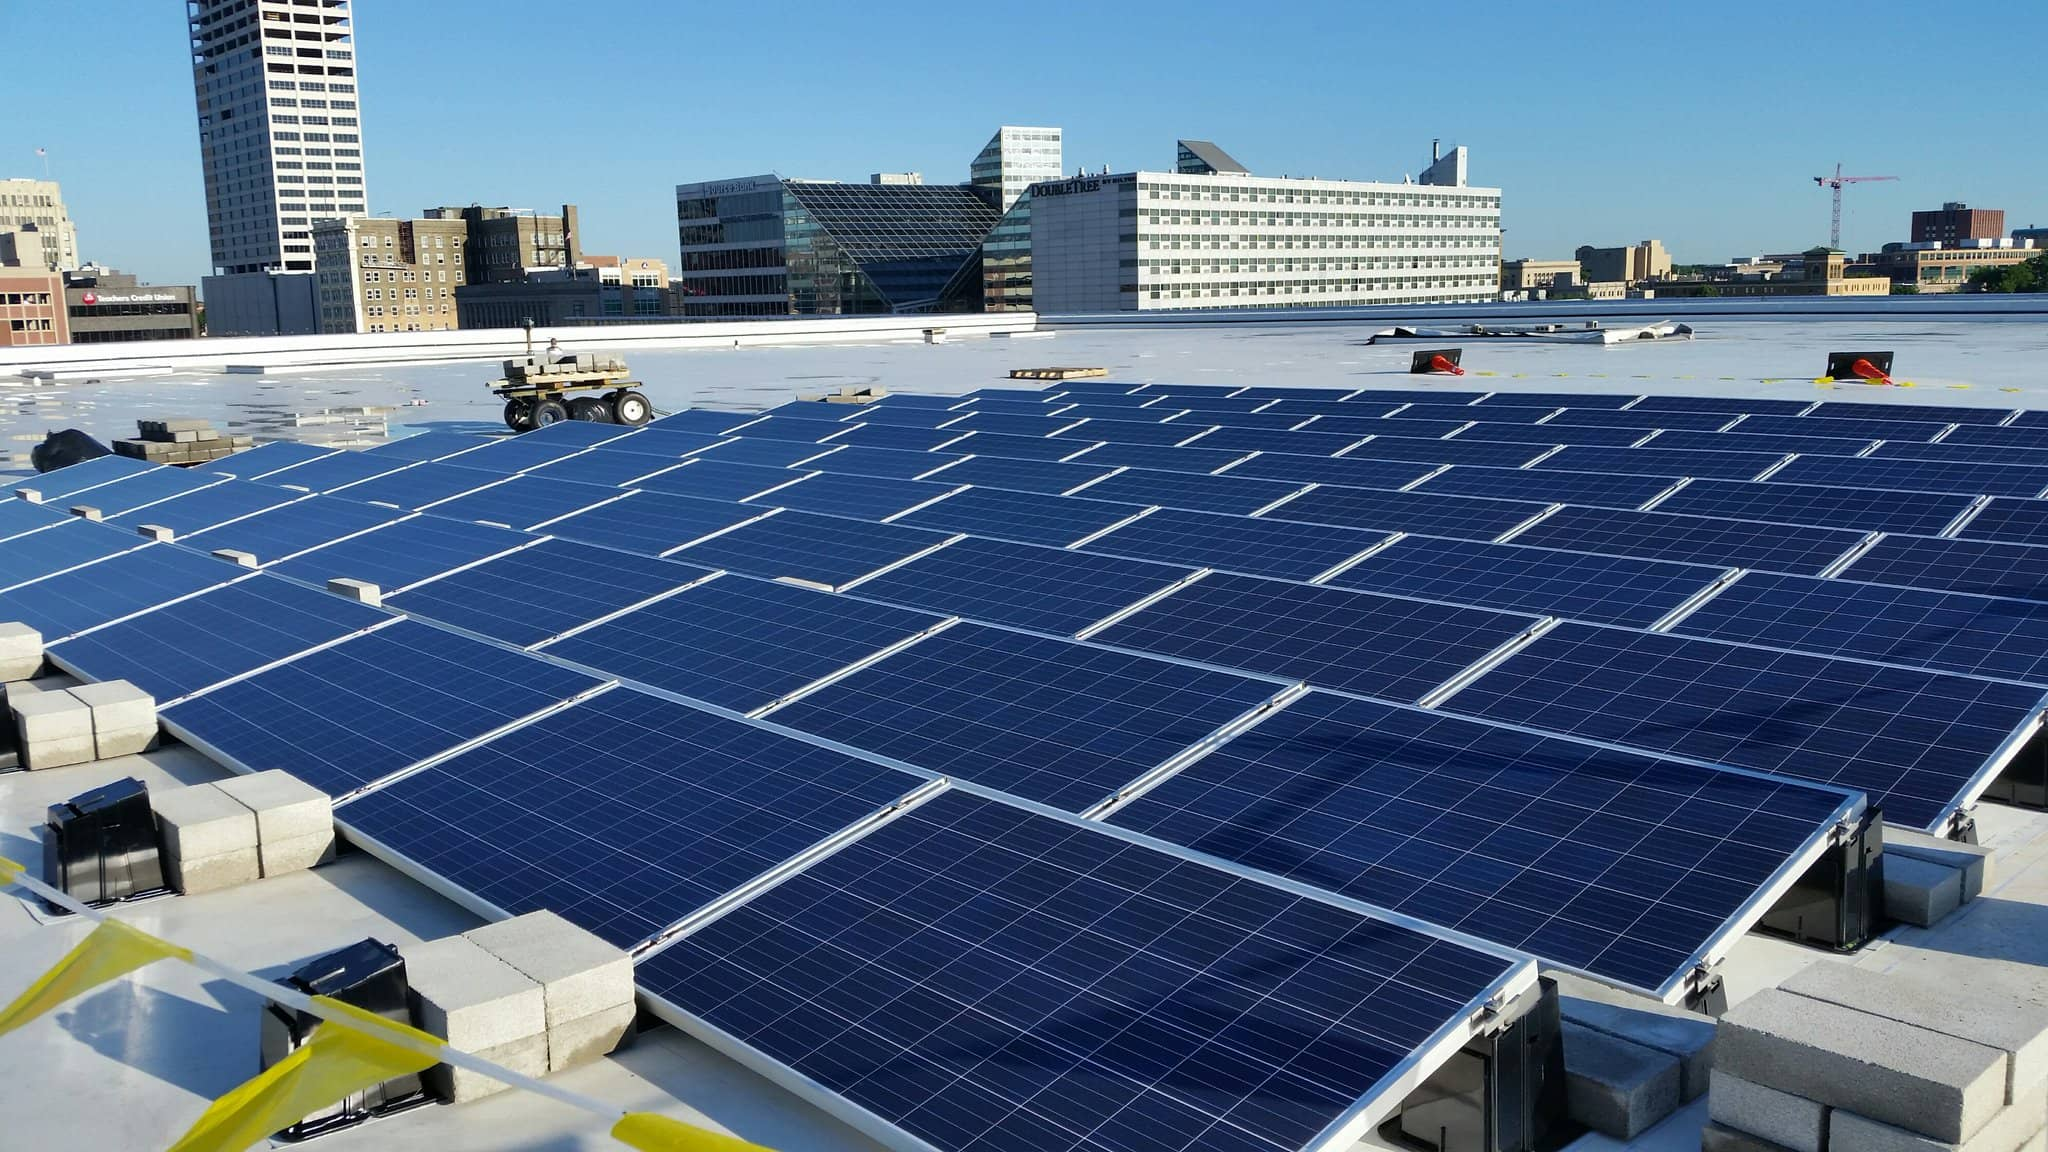 South-Bend City Of South Bend Adds Rooftop Solar At Convention Center